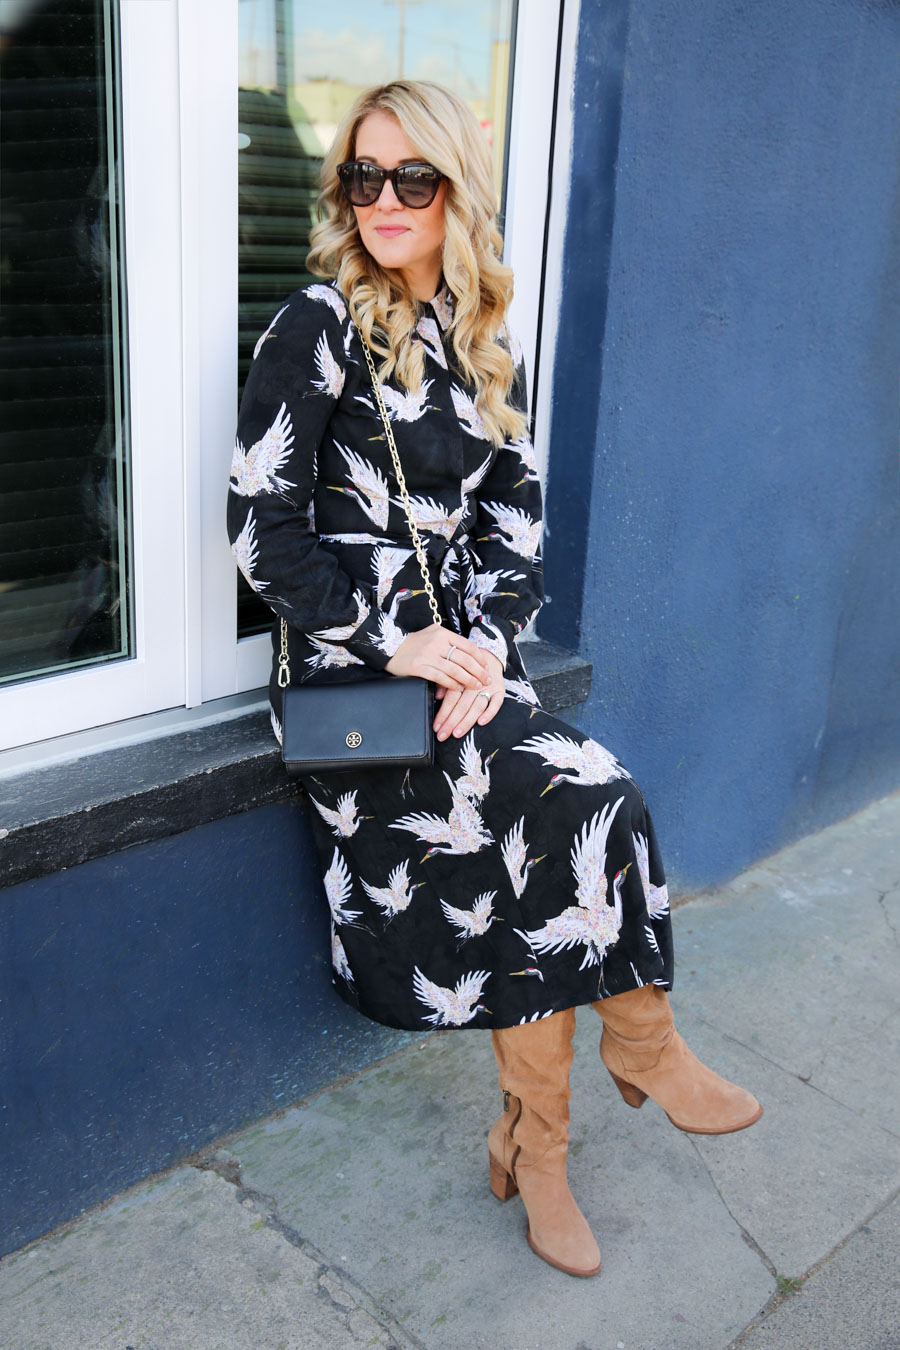 Layering Dresses for Cold Weather - How to Wear Thermal Tights